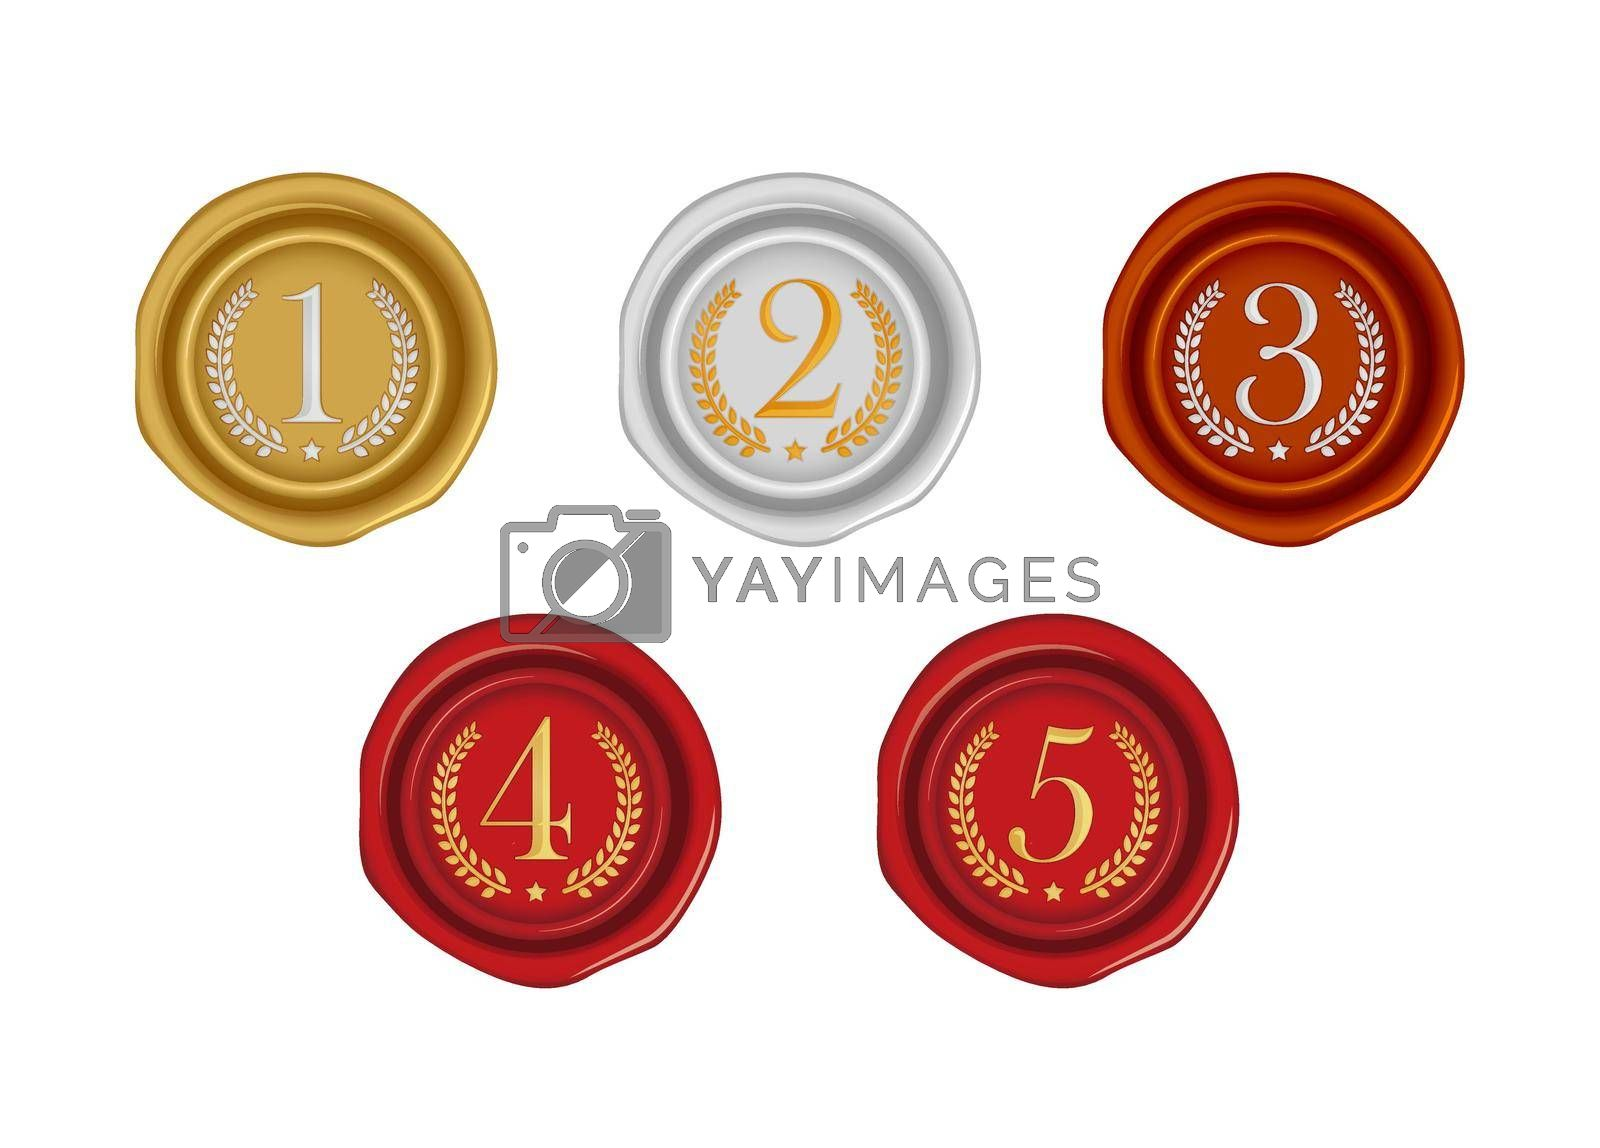 Sealing wax stamp vector illustration set ( number, ranking ) from 1st to 5th (gold, silver, bronze, red )